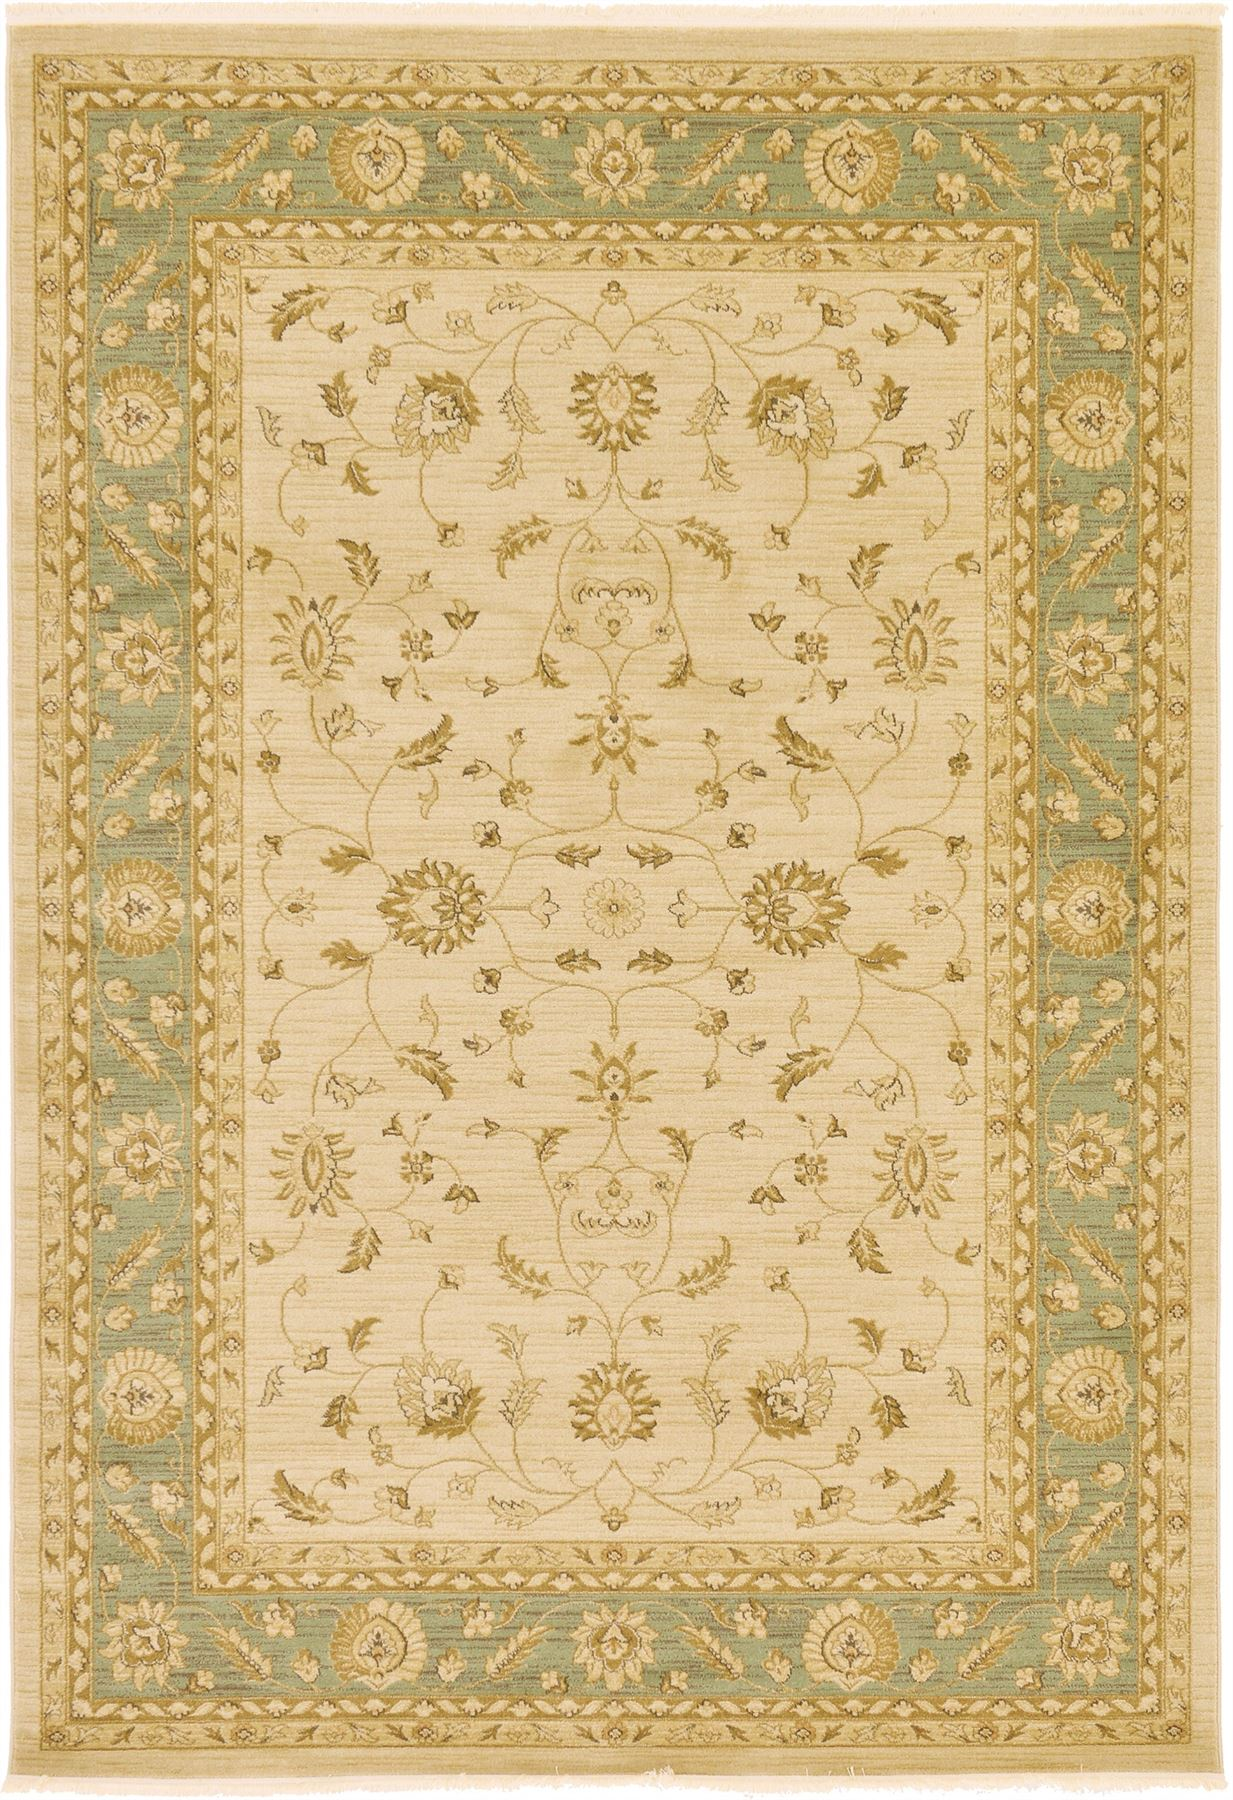 Extra large area rugs canada shop swhf egyptian cotton for Best store to buy rugs